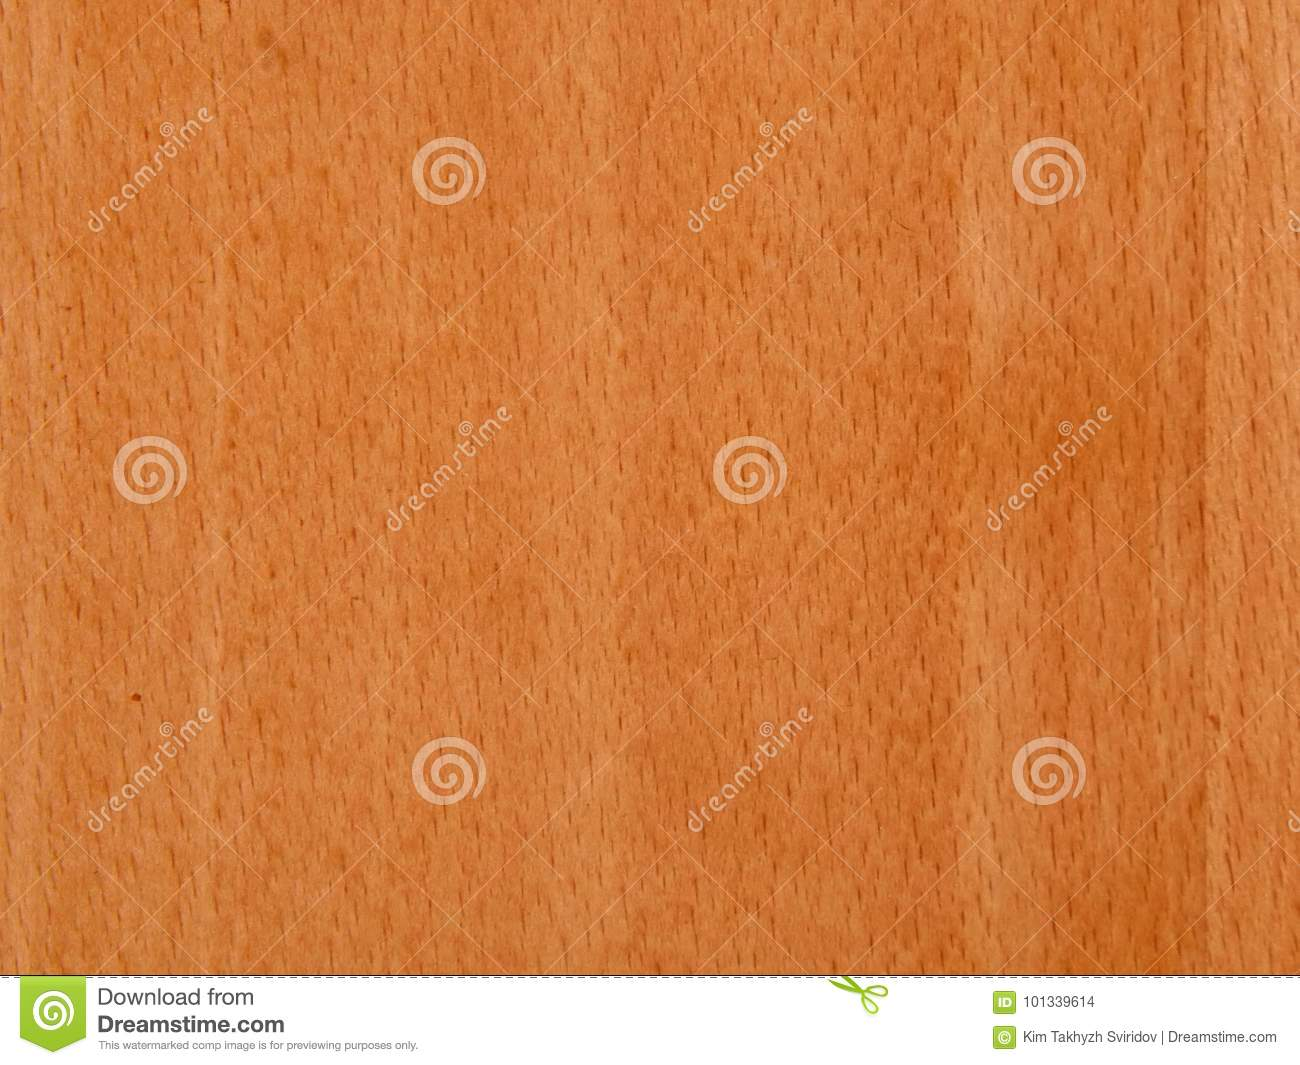 Texture of a wooden surface of a cherry tree wood veneer for furniture